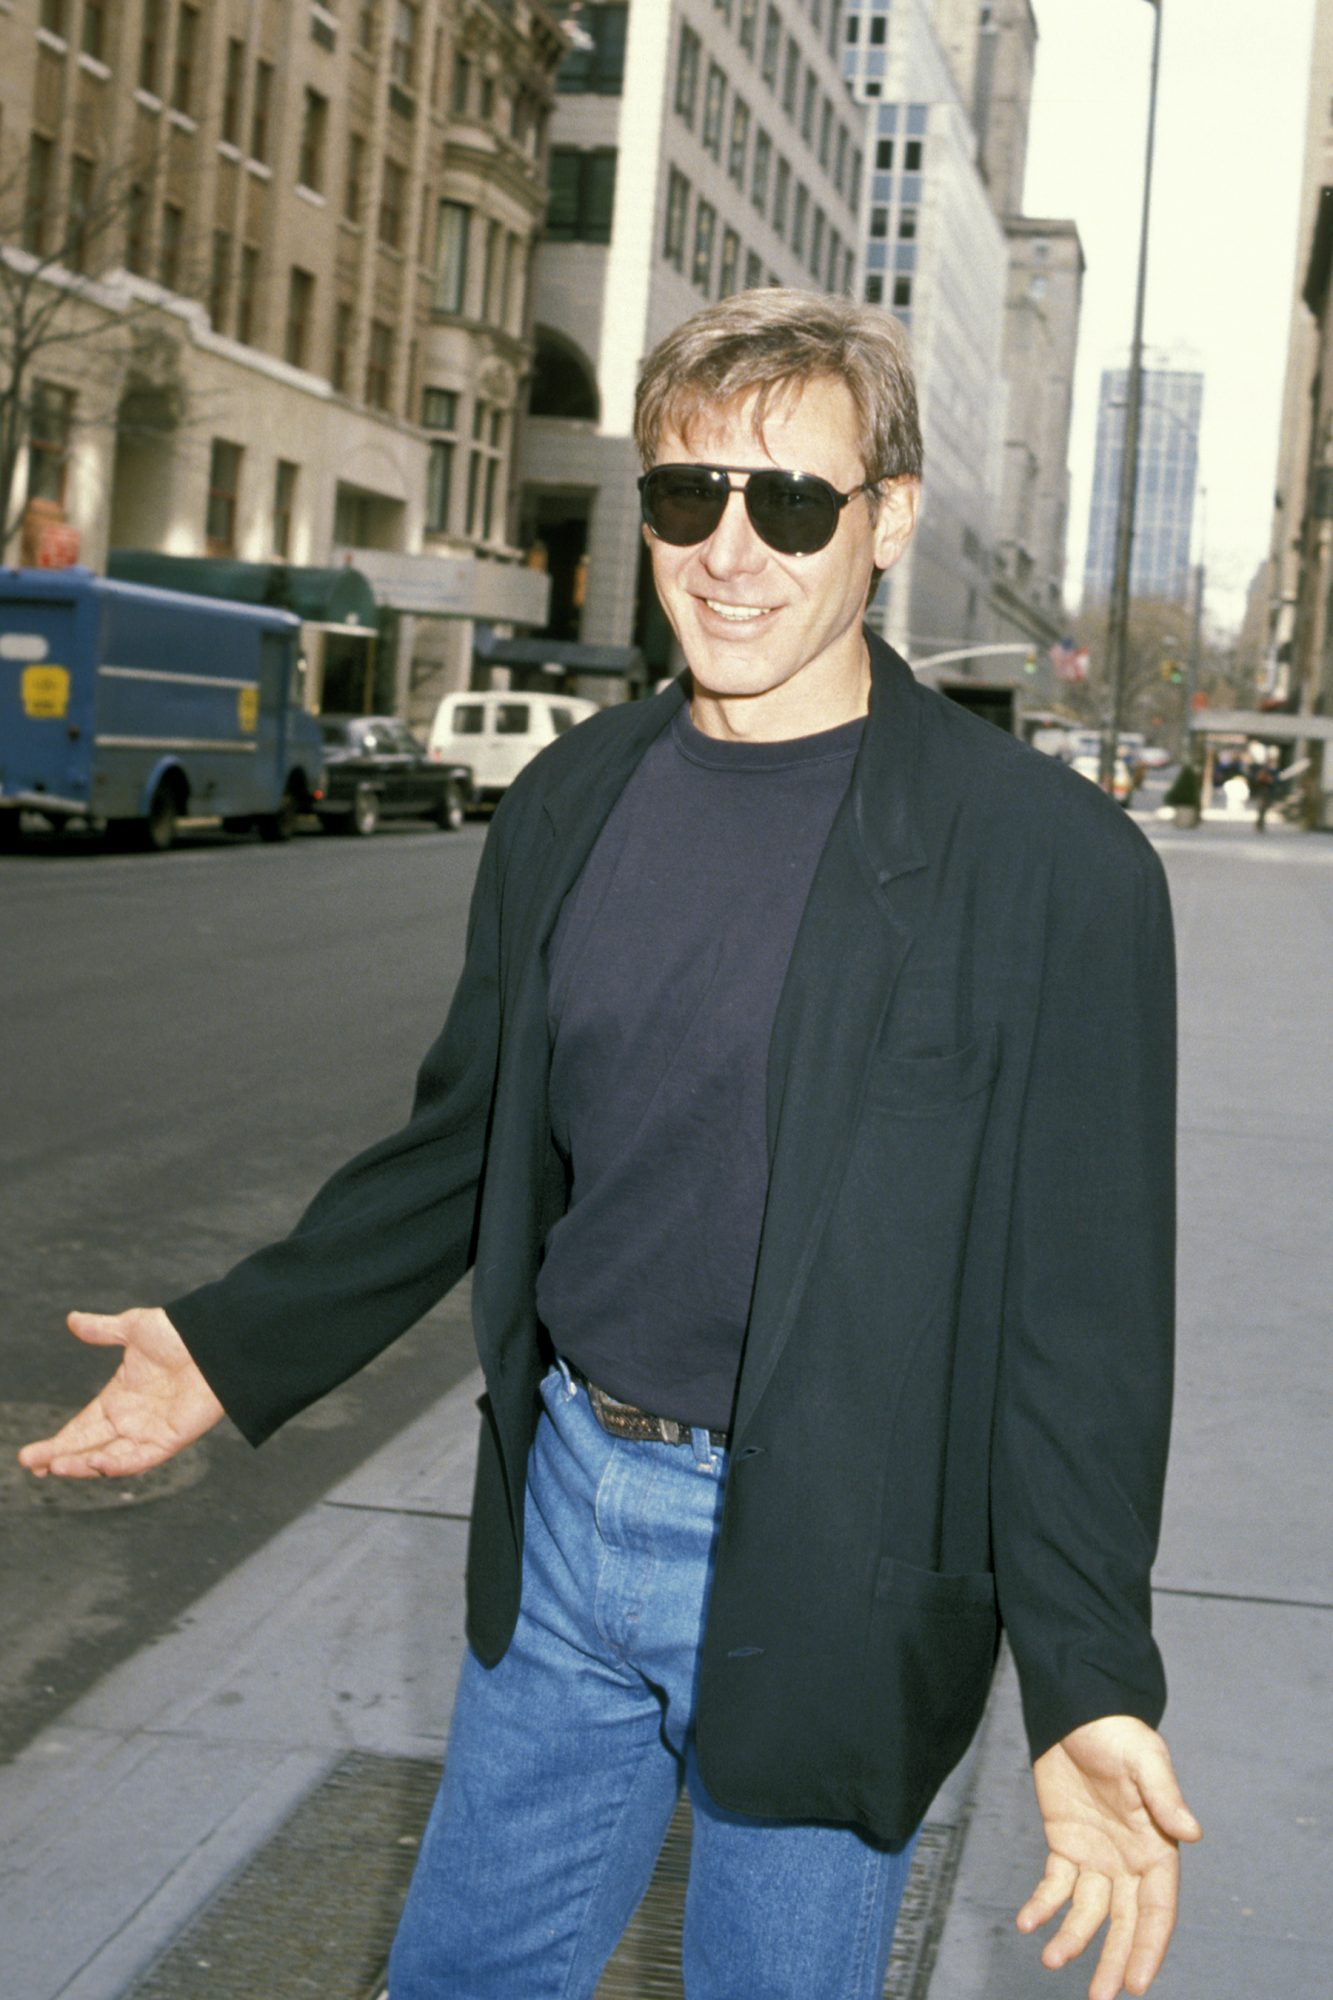 Harrison Ford Sighting on Park Avenue - March 28, 1989